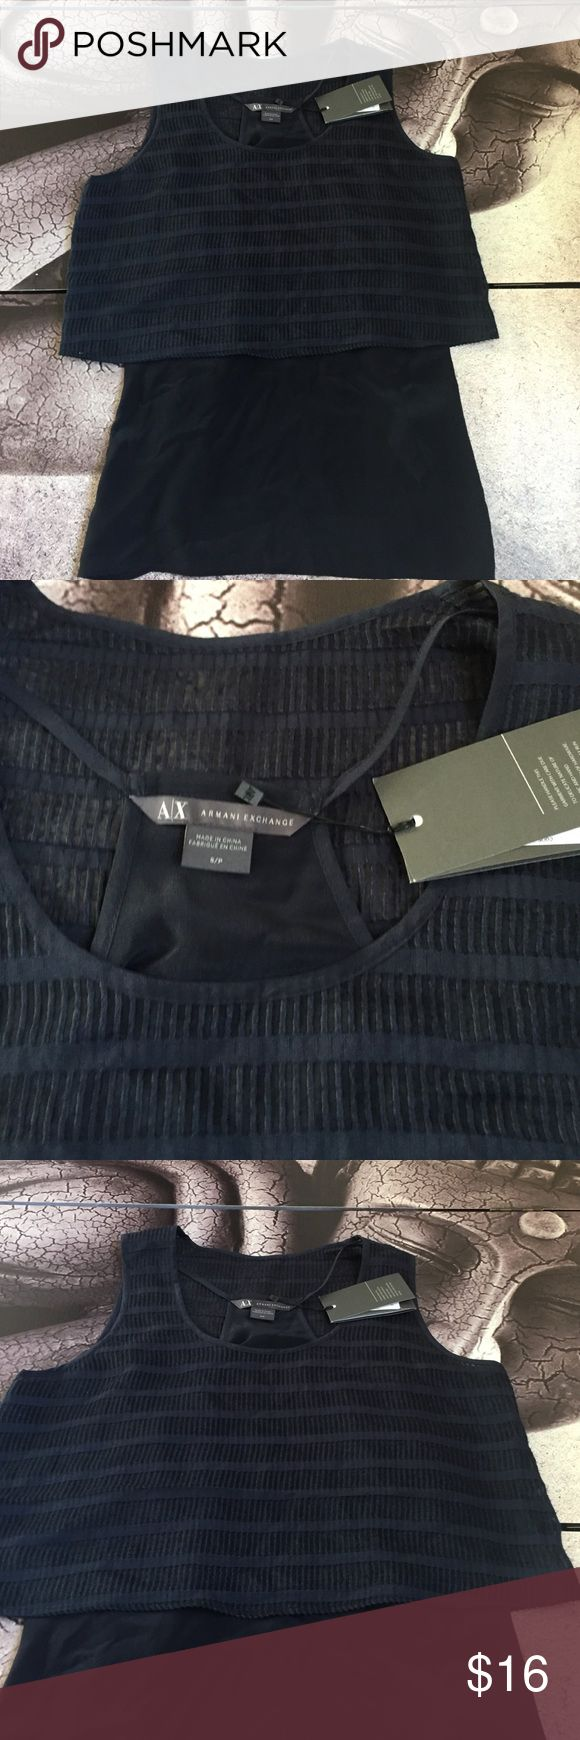 Armani Exchange Two in One Top Cute Armani Exchange top in navy. Includes tank top and outer shell. Shell: 76% Rayon 24% nylon. Lining: 100% Mulberry Silk. Armani Exchange Tops Blouses